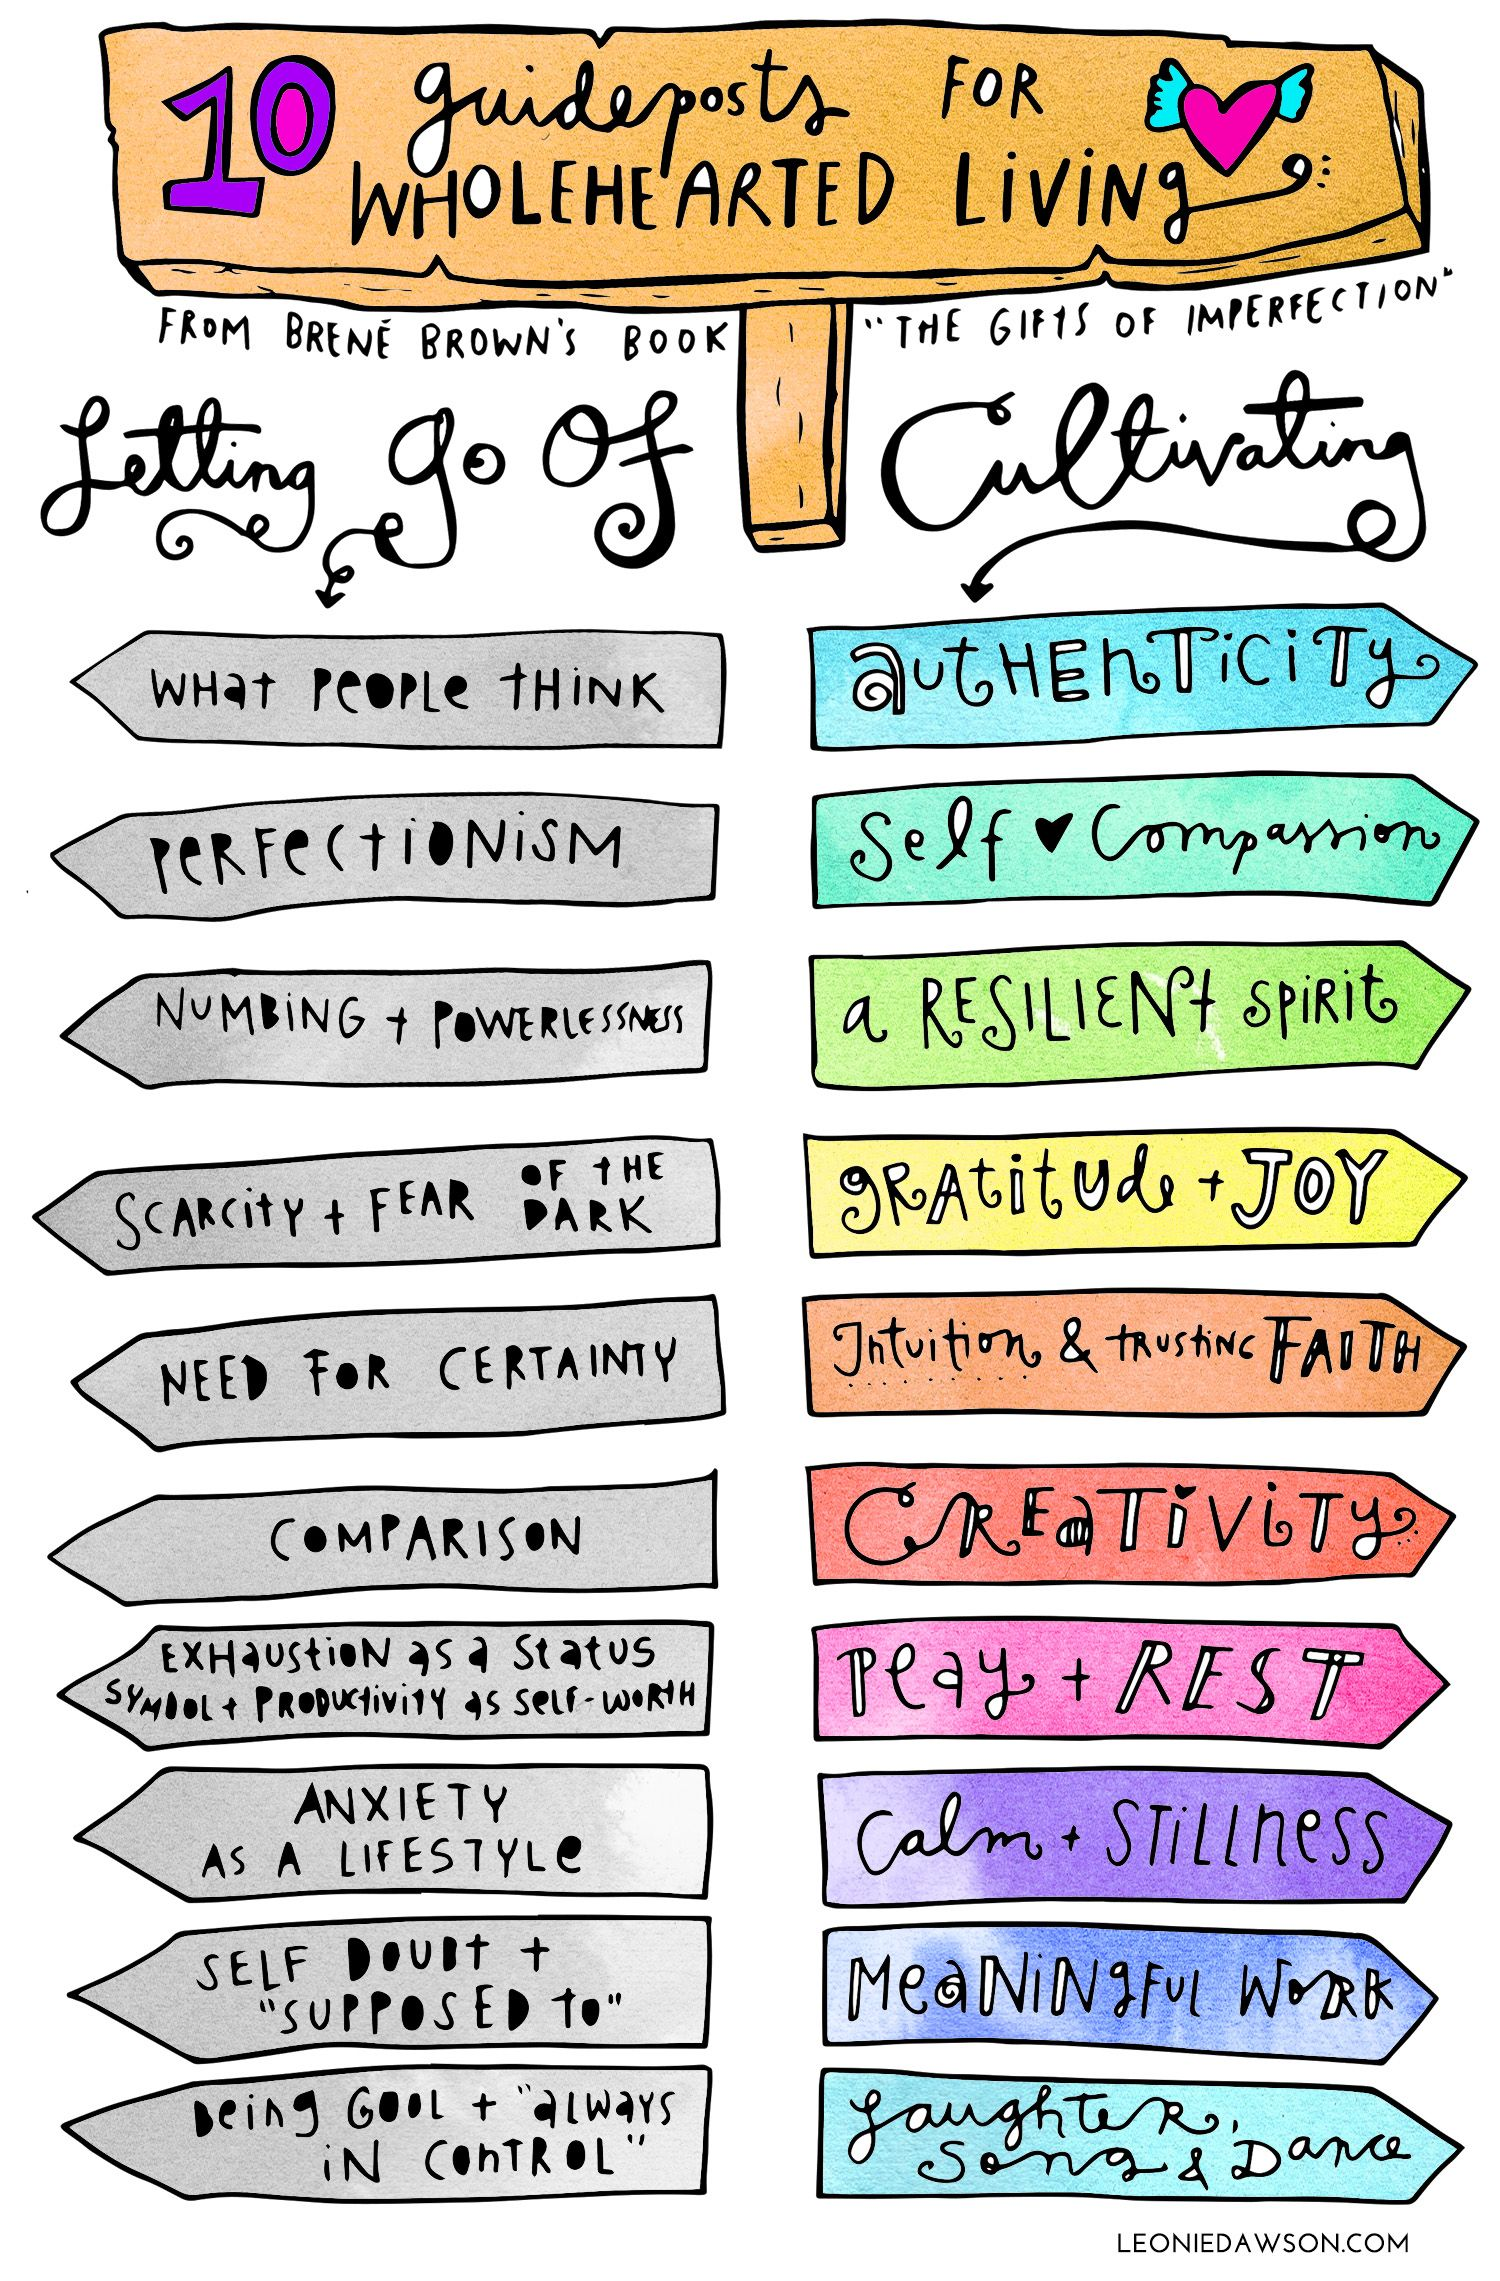 FREE POSTER + COLOURING PAGE: Brené Brown's 10 Guideposts For Wholehearted Living - Leonie Dawson | Goals, Marketing + Creativity For Glorious Humans